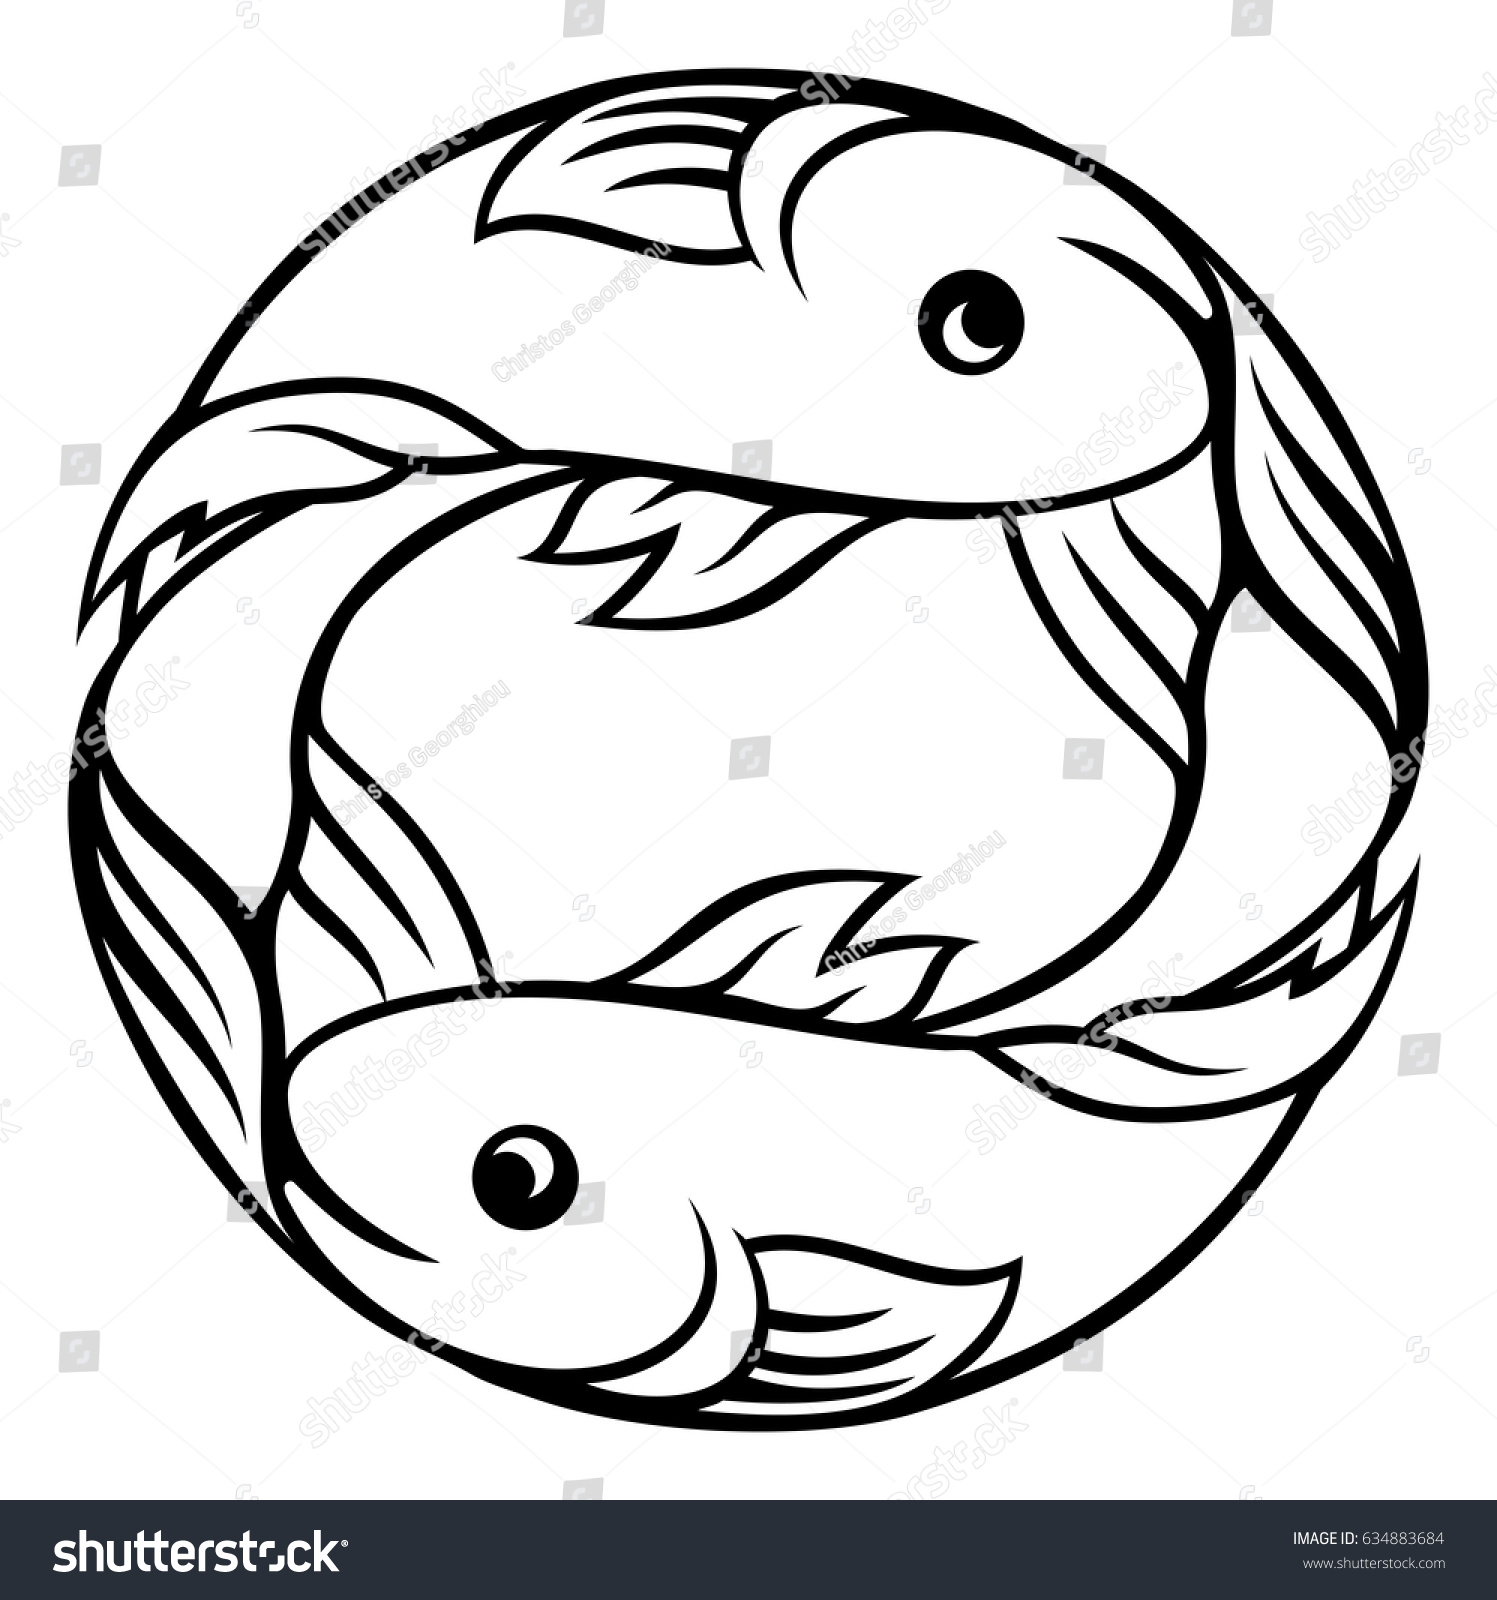 Pisces fish horoscope astrology zodiac sign stock vector 634883684 a pisces fish horoscope astrology zodiac sign symbol biocorpaavc Images